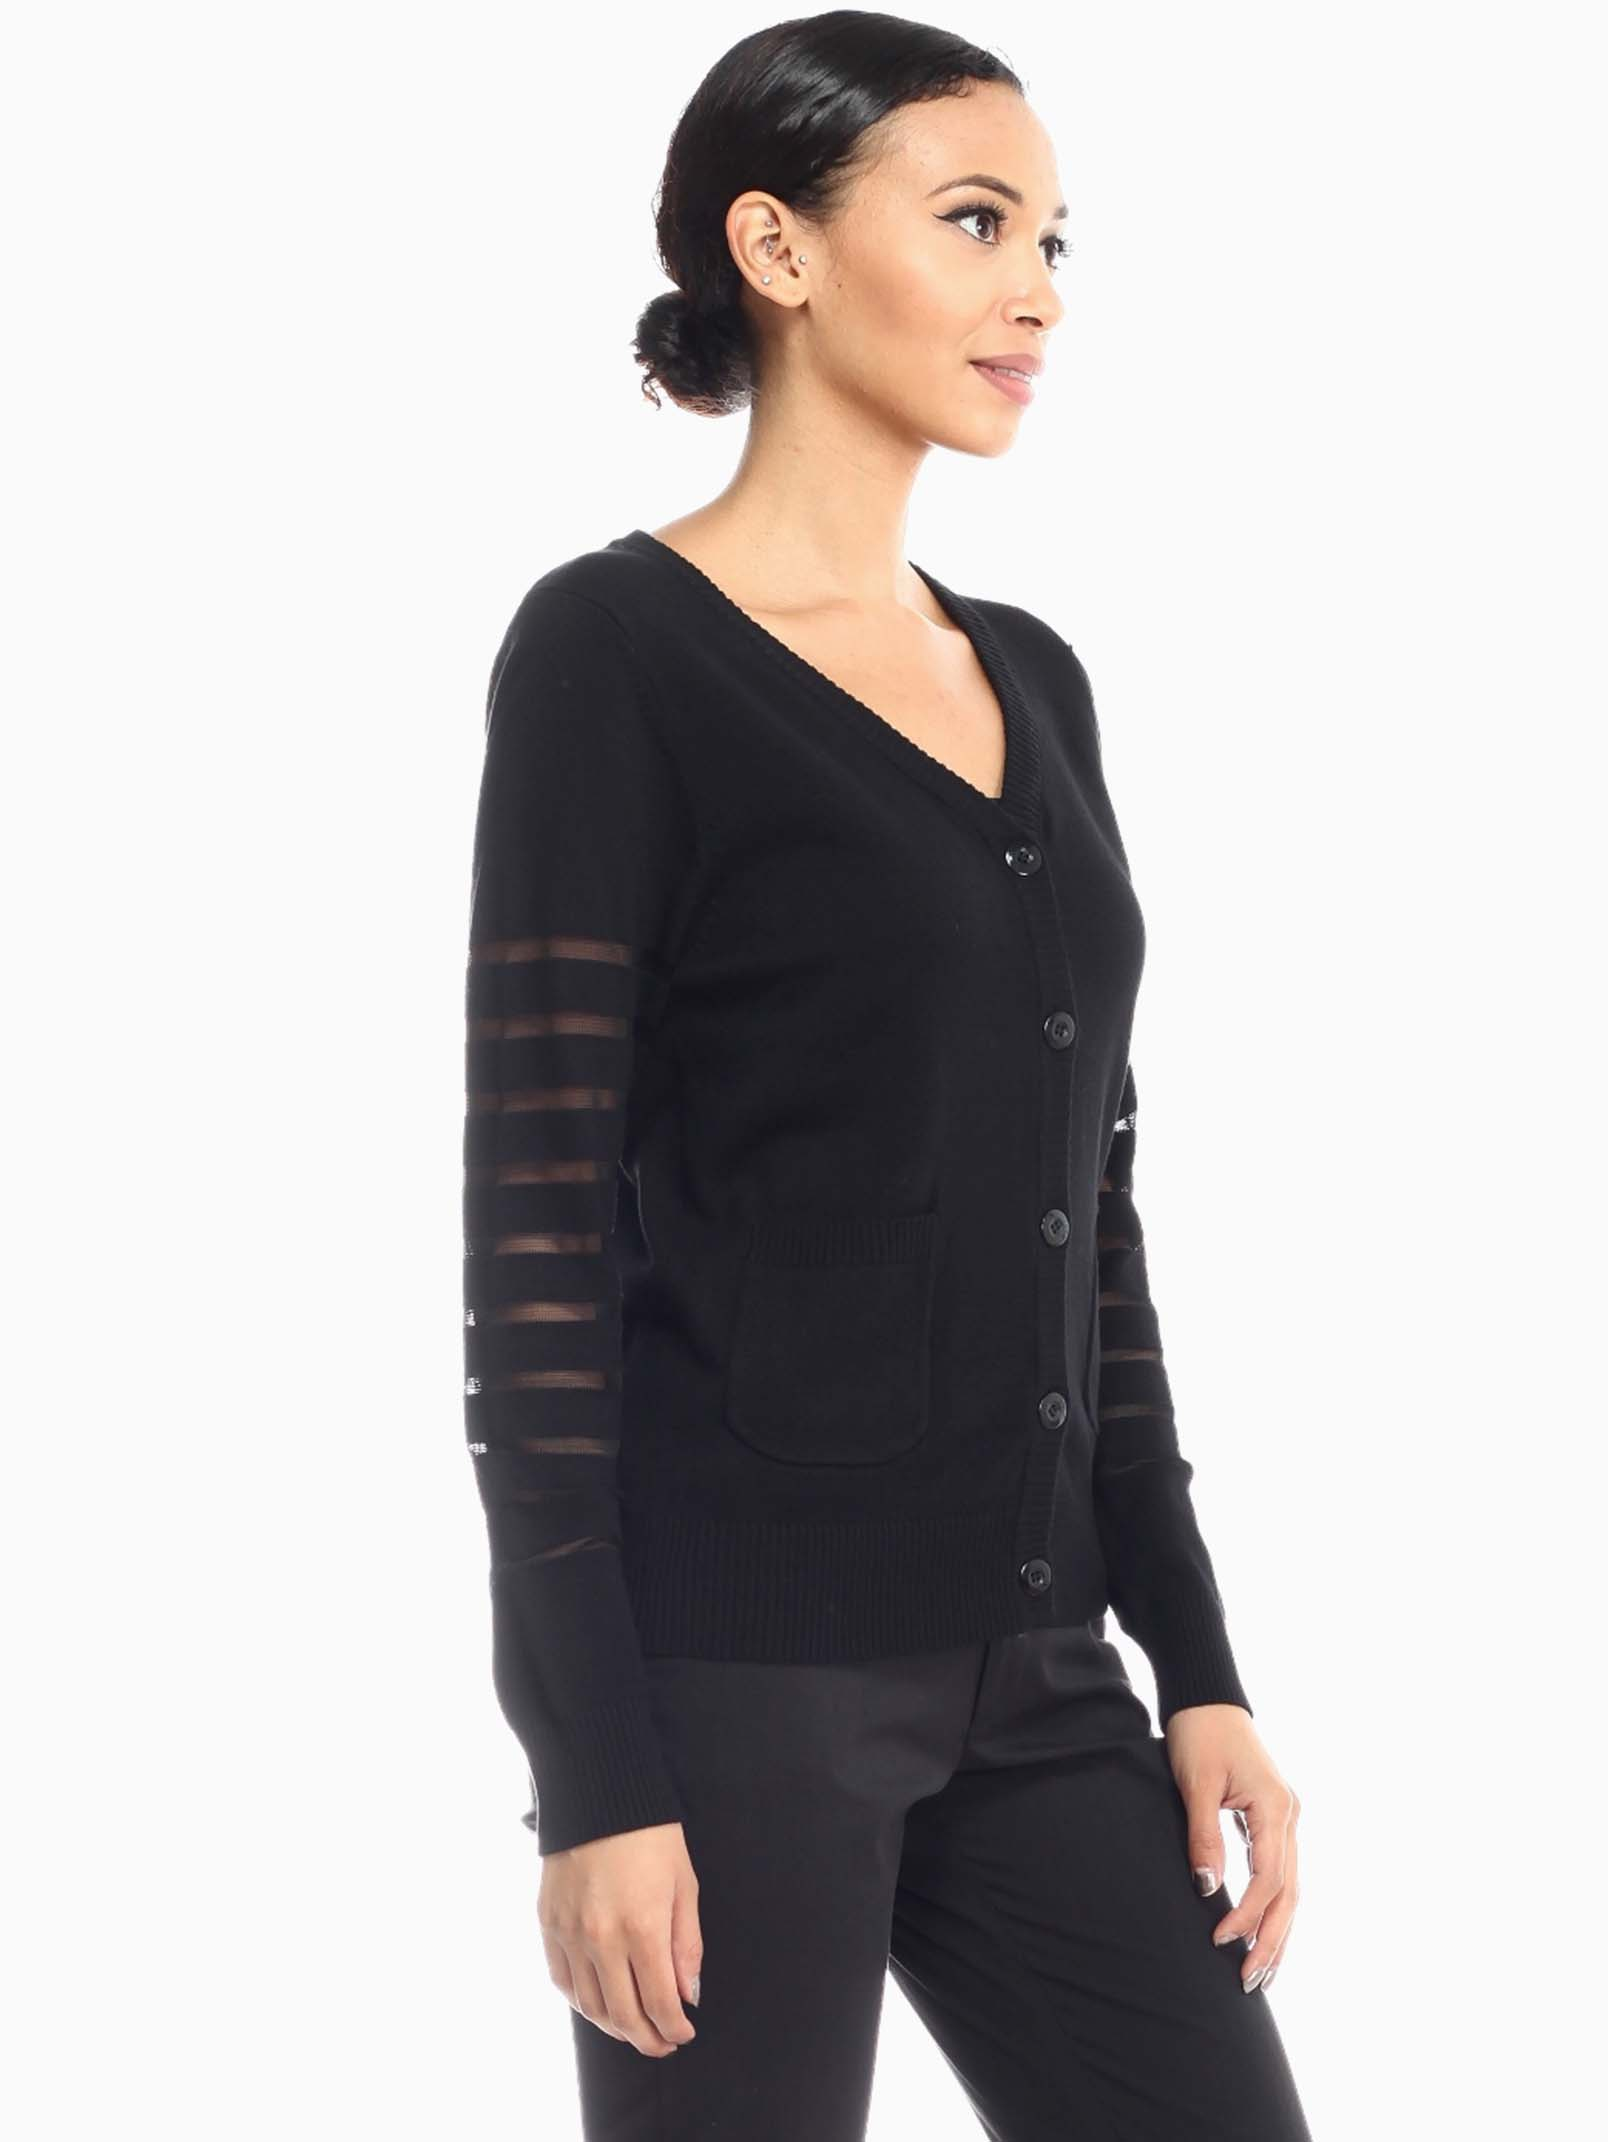 Black Sheer Mesh Point Cardigan